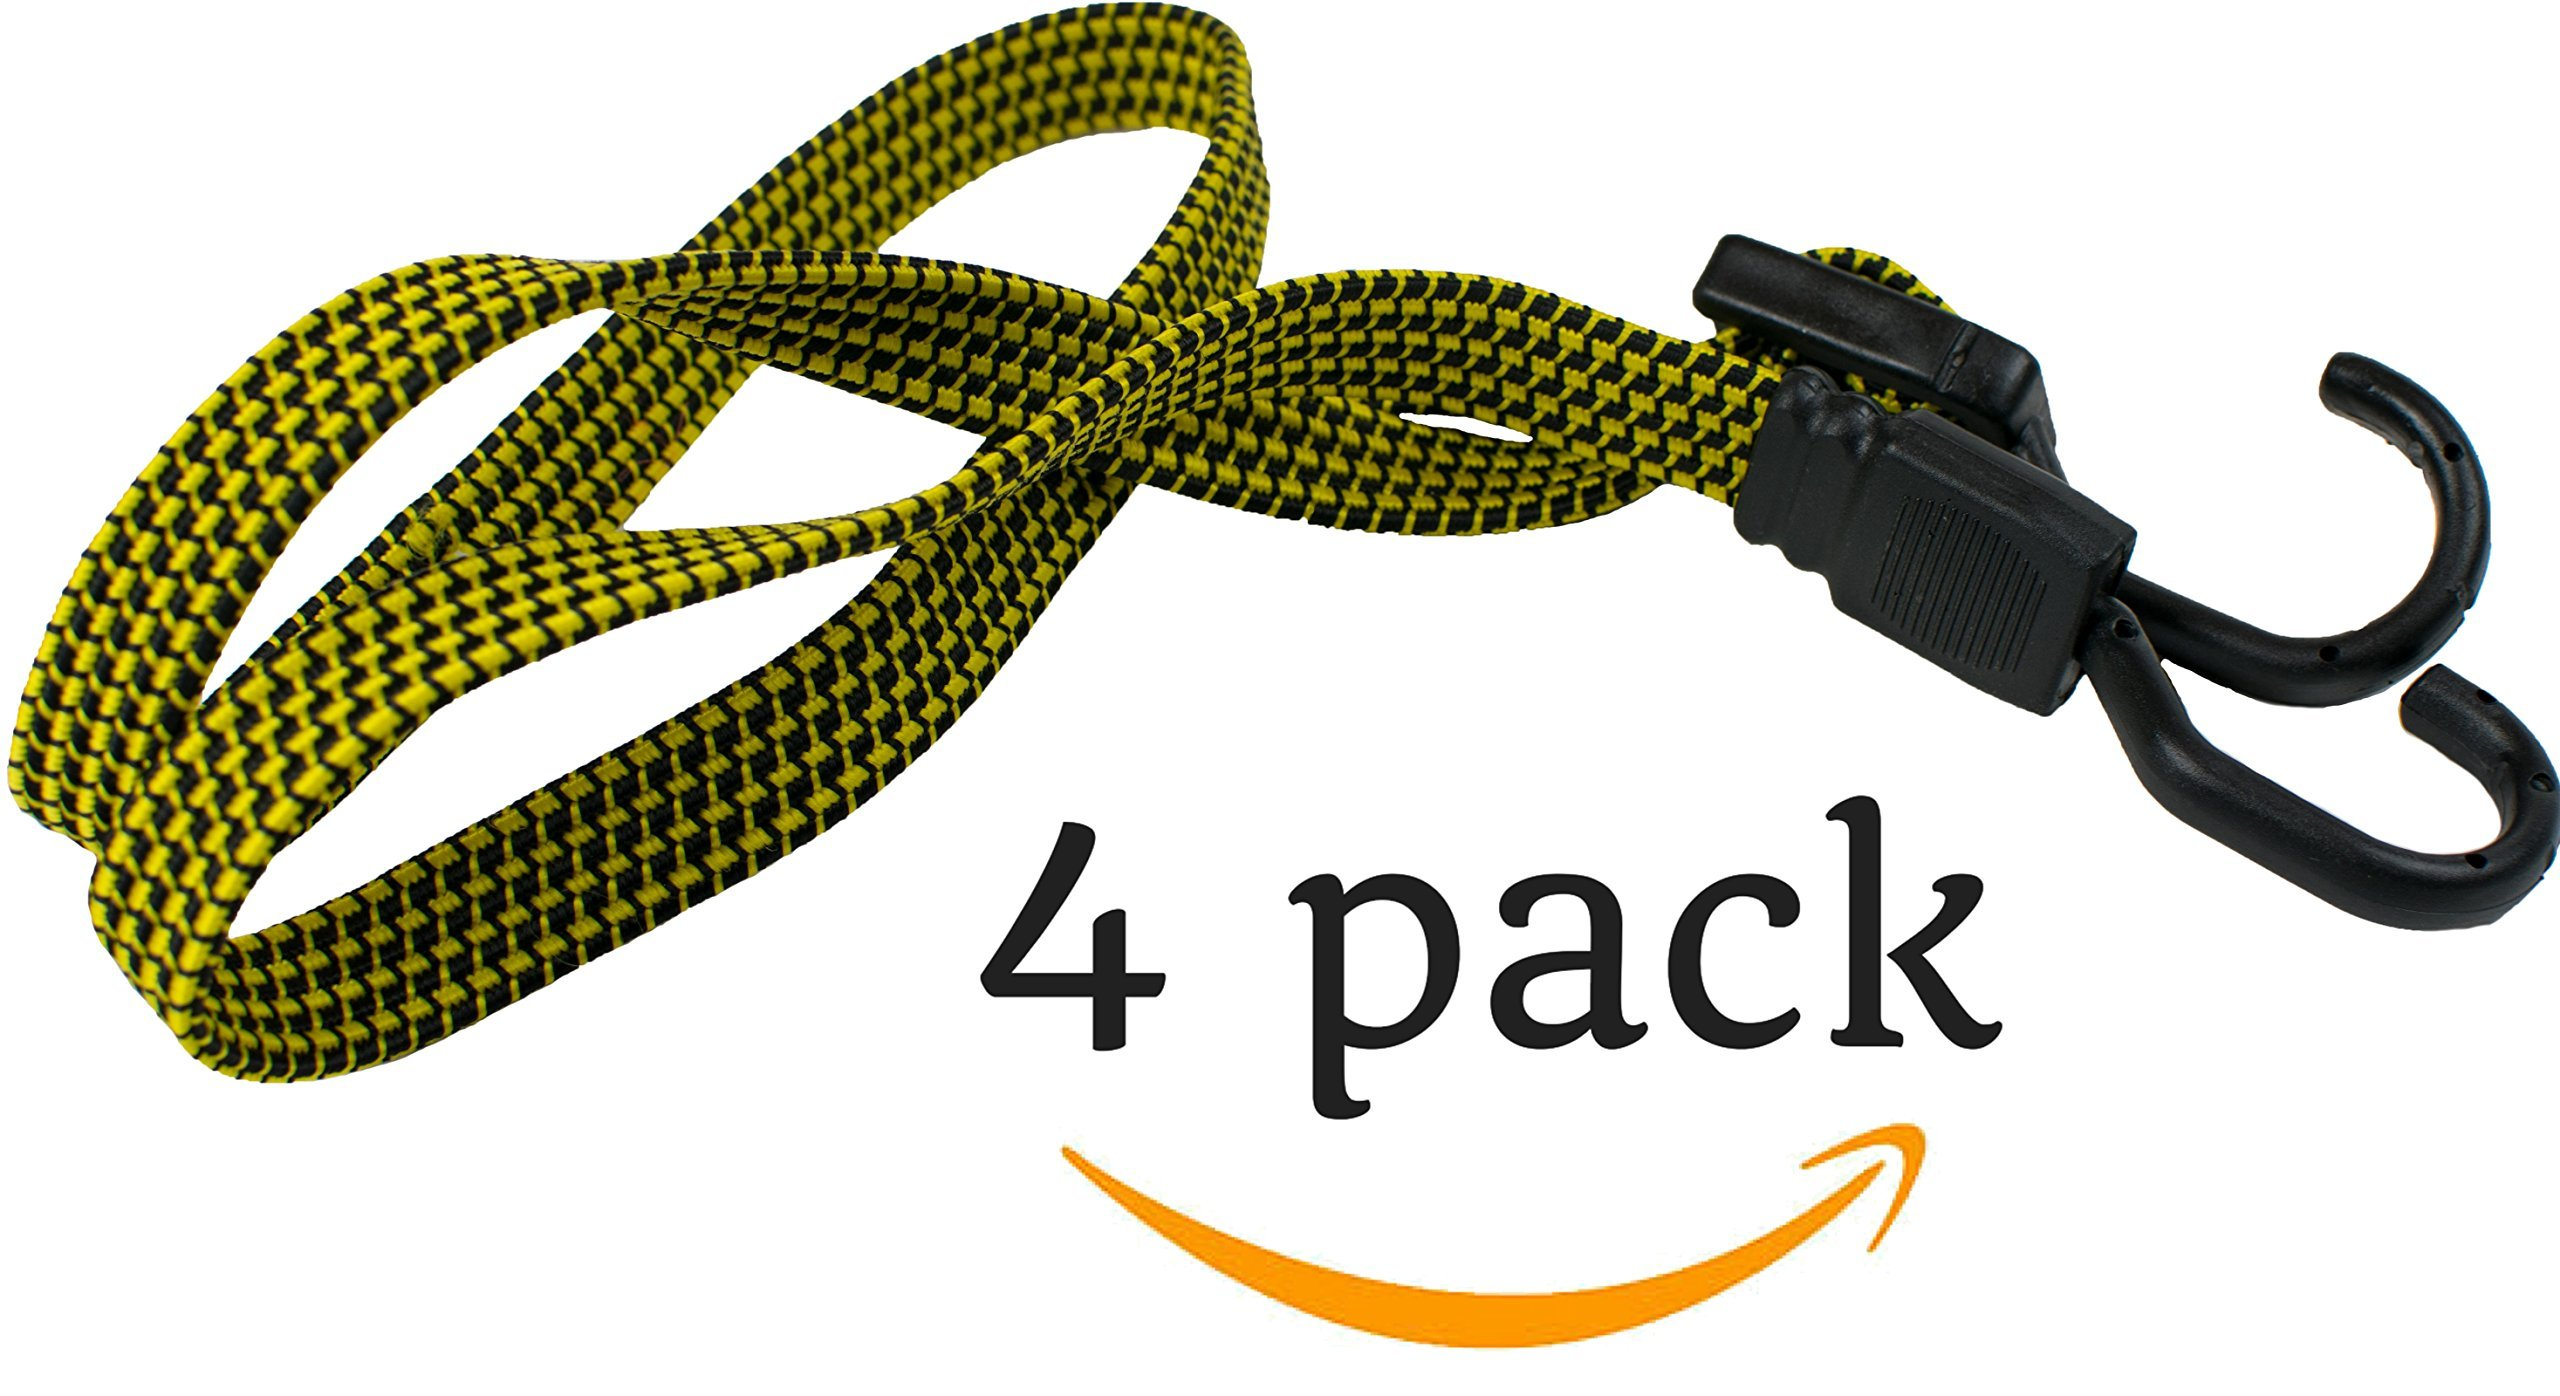 HeavyWeight Flat Bungee Cords 4 PACK with BONUS 4 Ball Bungees | 48'' INCH Total Length with Adjustable Length Hooks | Hand Carts, Dolly, Cargo, Moving, Camping, RV, Trunk, Luggage Rack, Tarp Tie Down by Heavy Weight